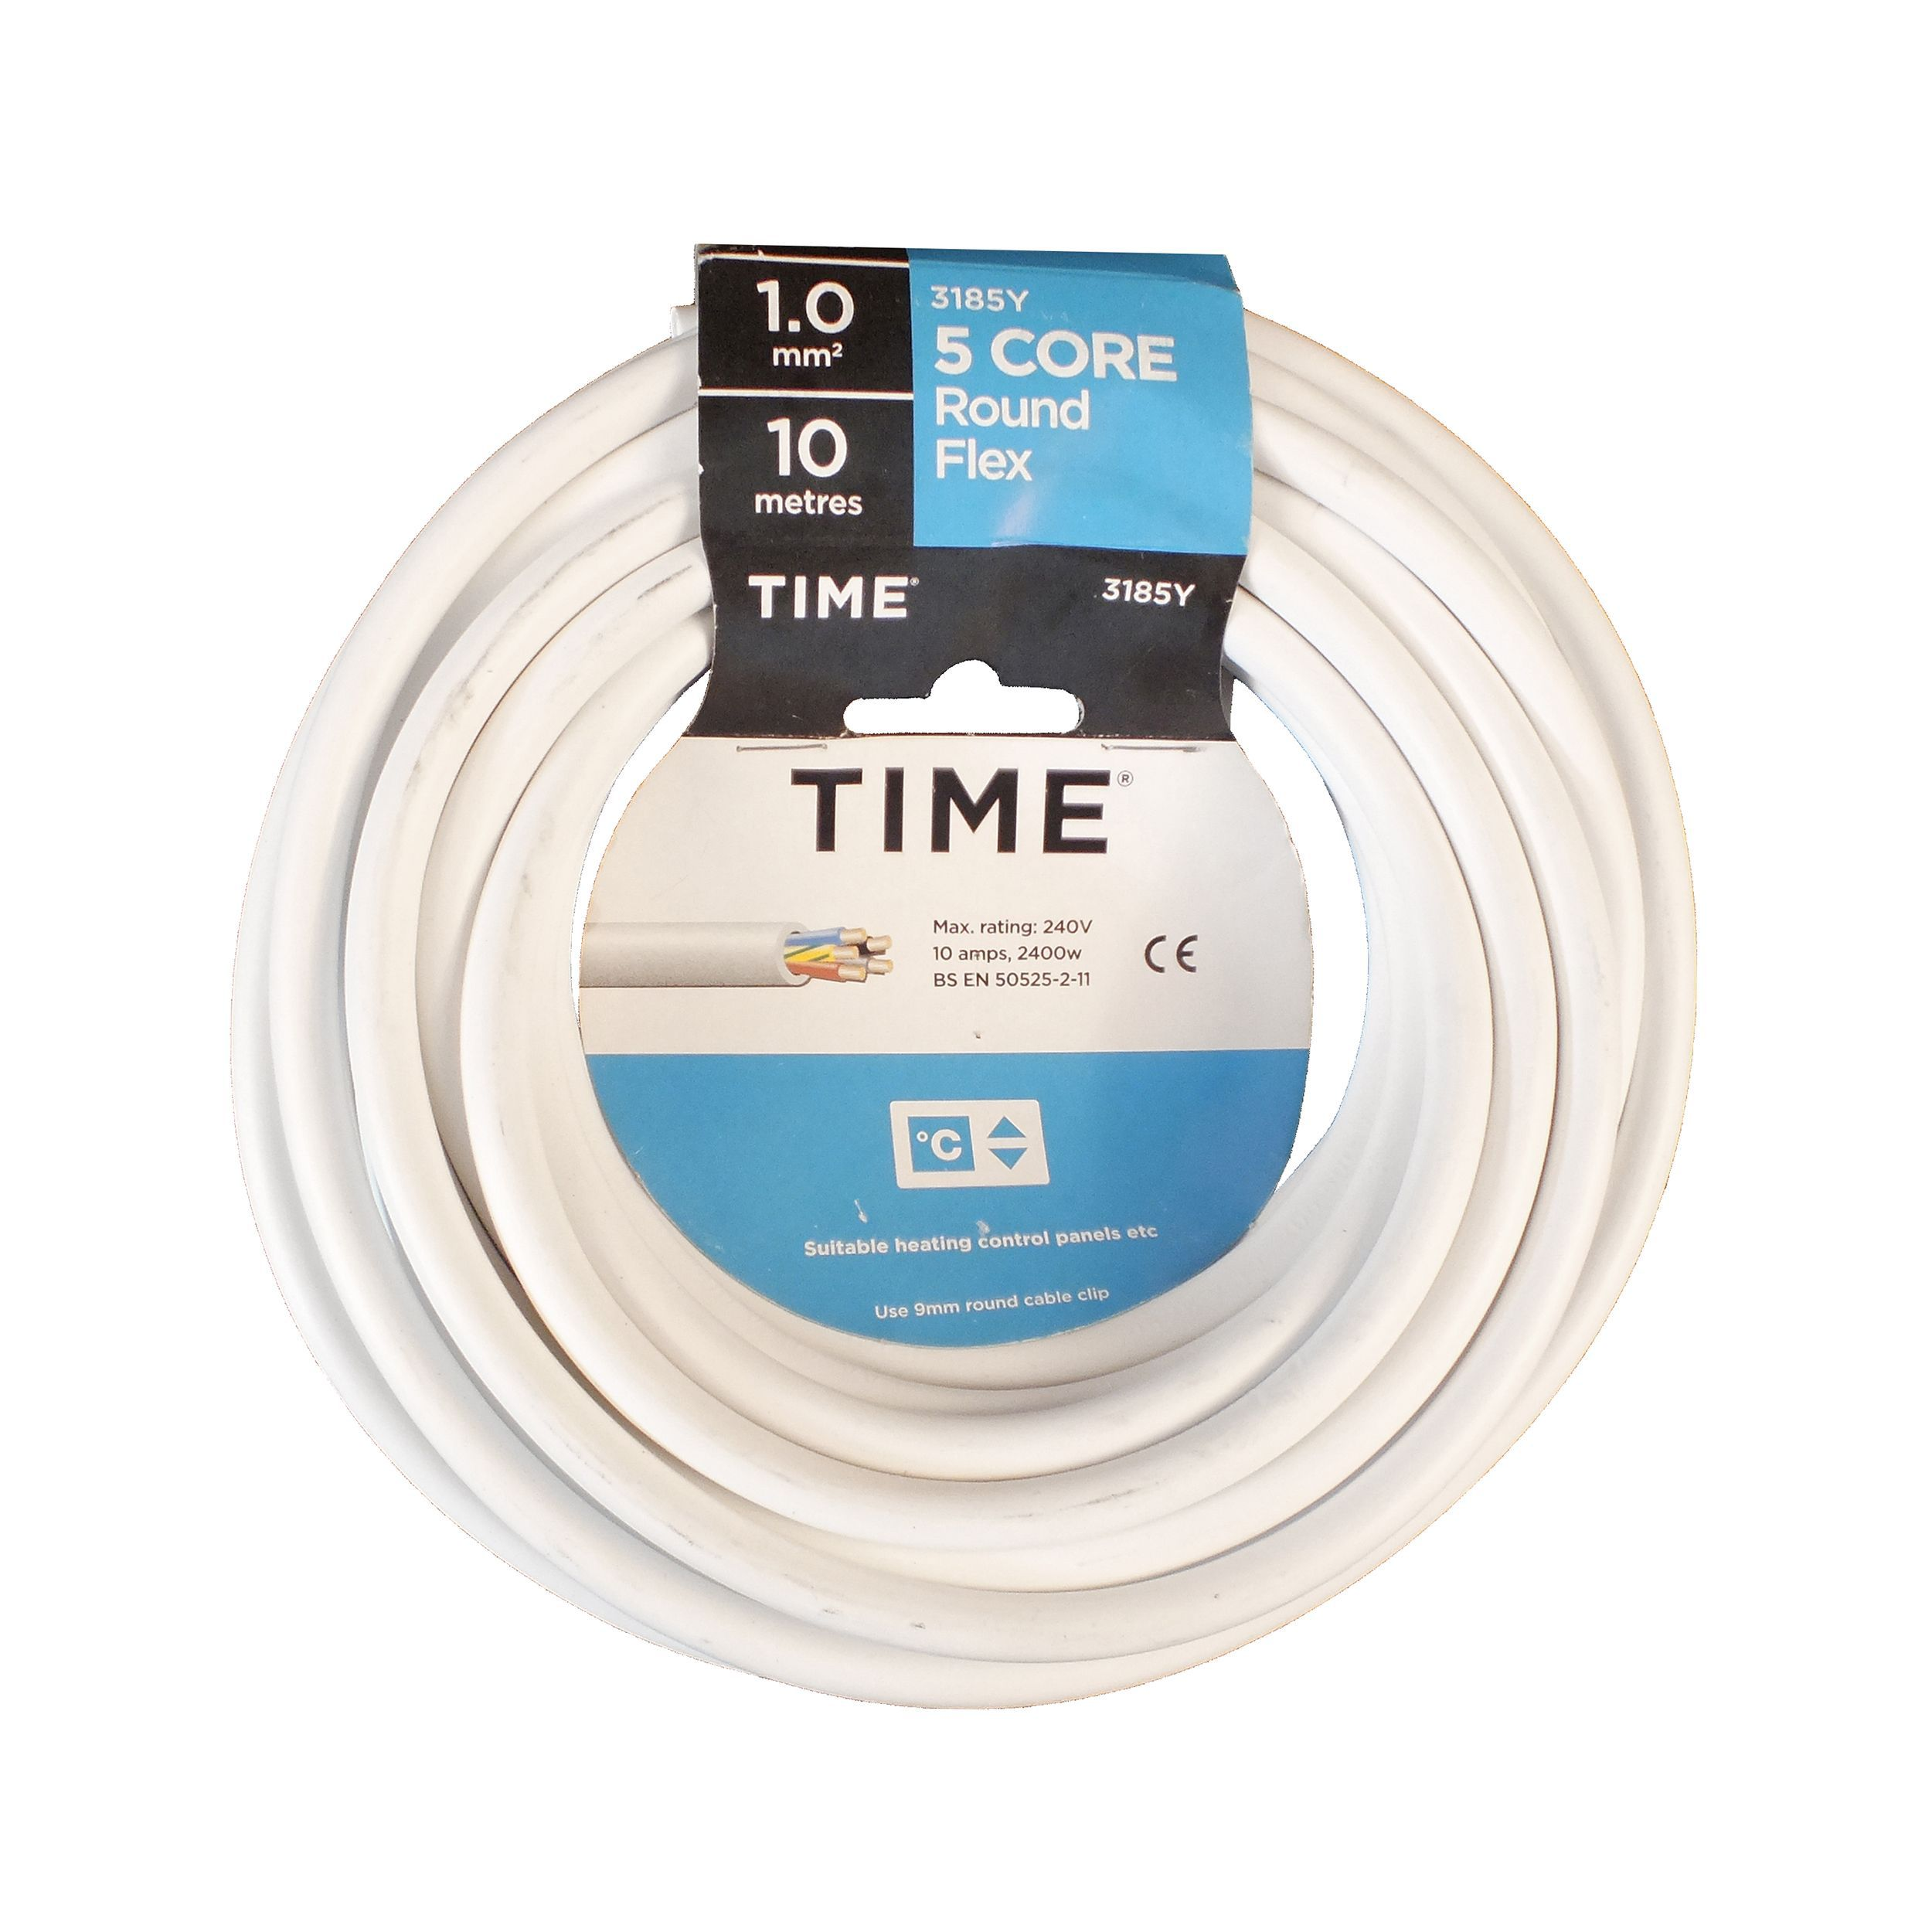 Time 5 Core Round Flexible Cable 1.0mm² 3185Y White 10m ...